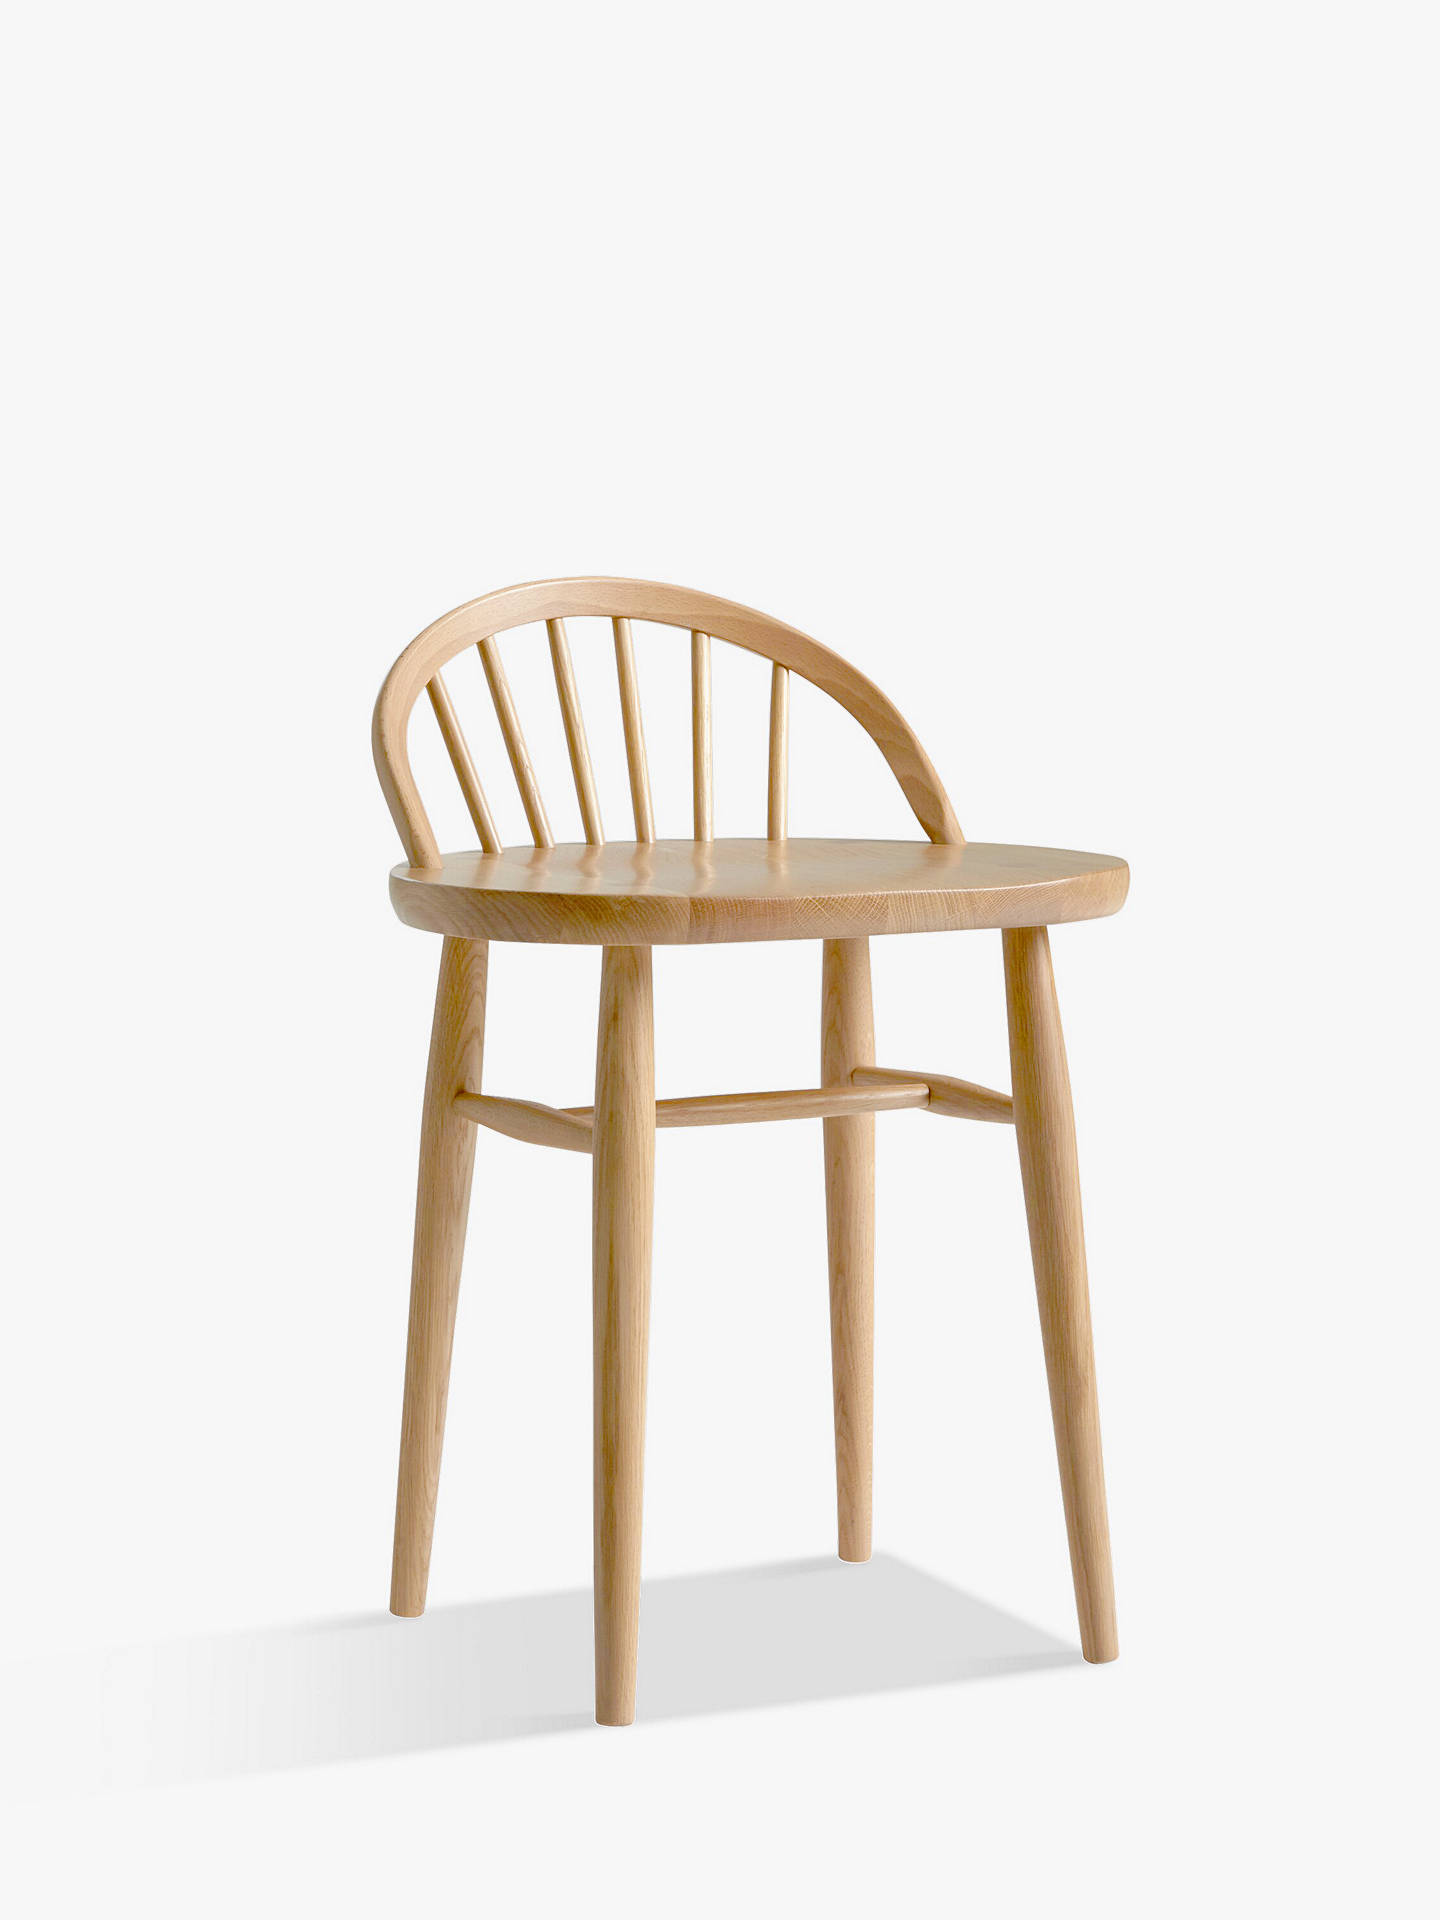 Dressing Table Chairs And Stools: Ercol For John Lewis Shalstone Dressing Table Chair, Oak